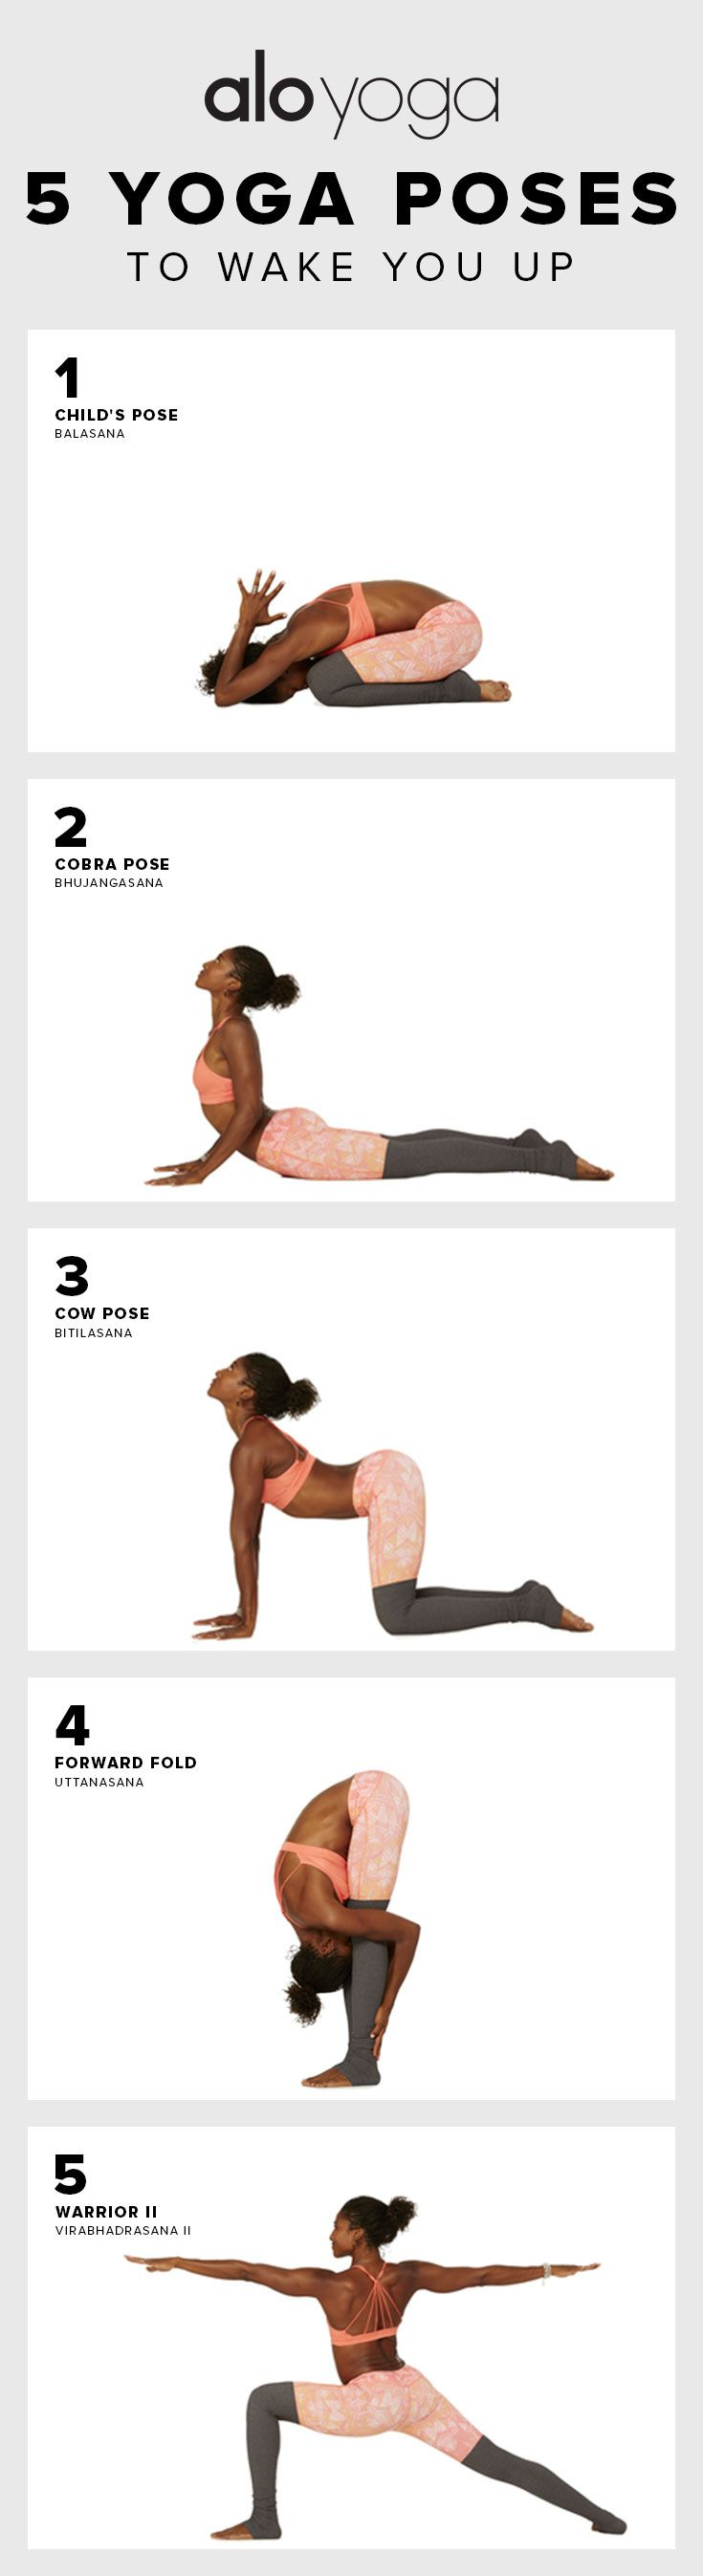 5 Yoga Poses To Wake You Up in the Morning!